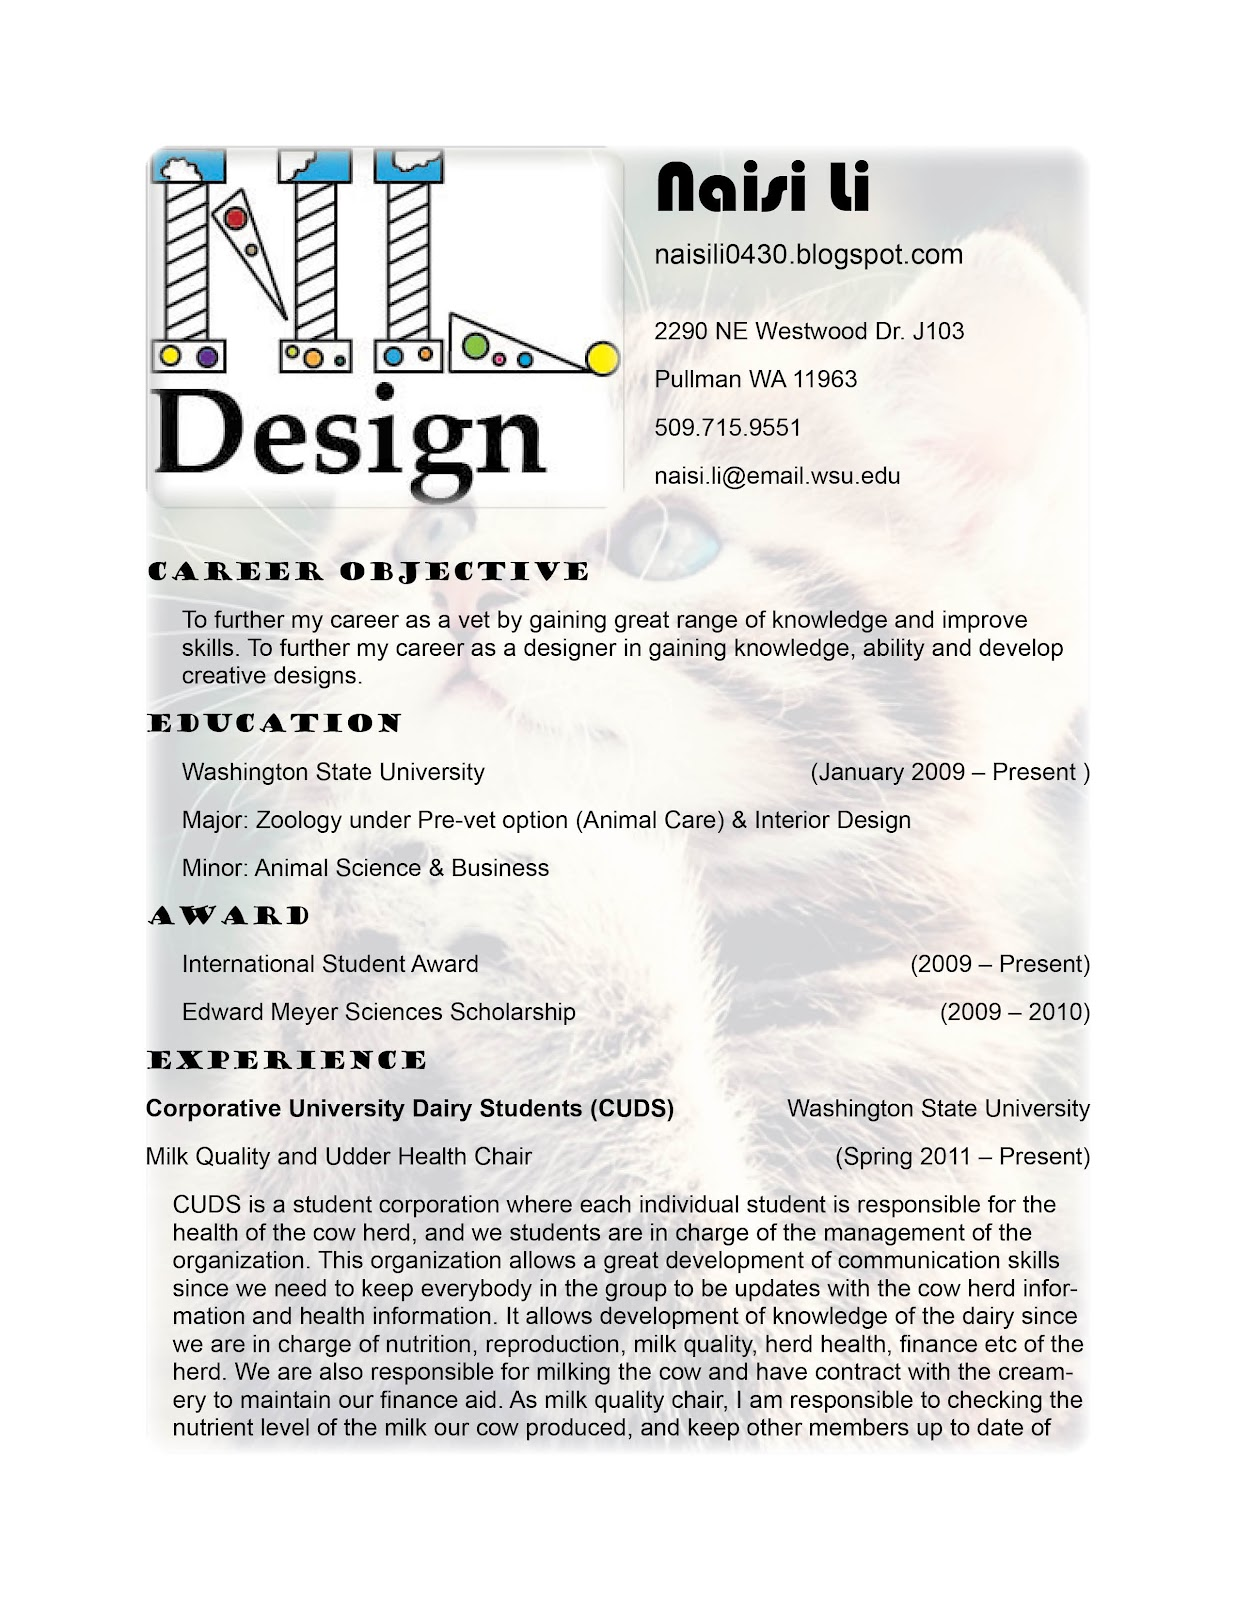 resume design sample designer cv template interior designer